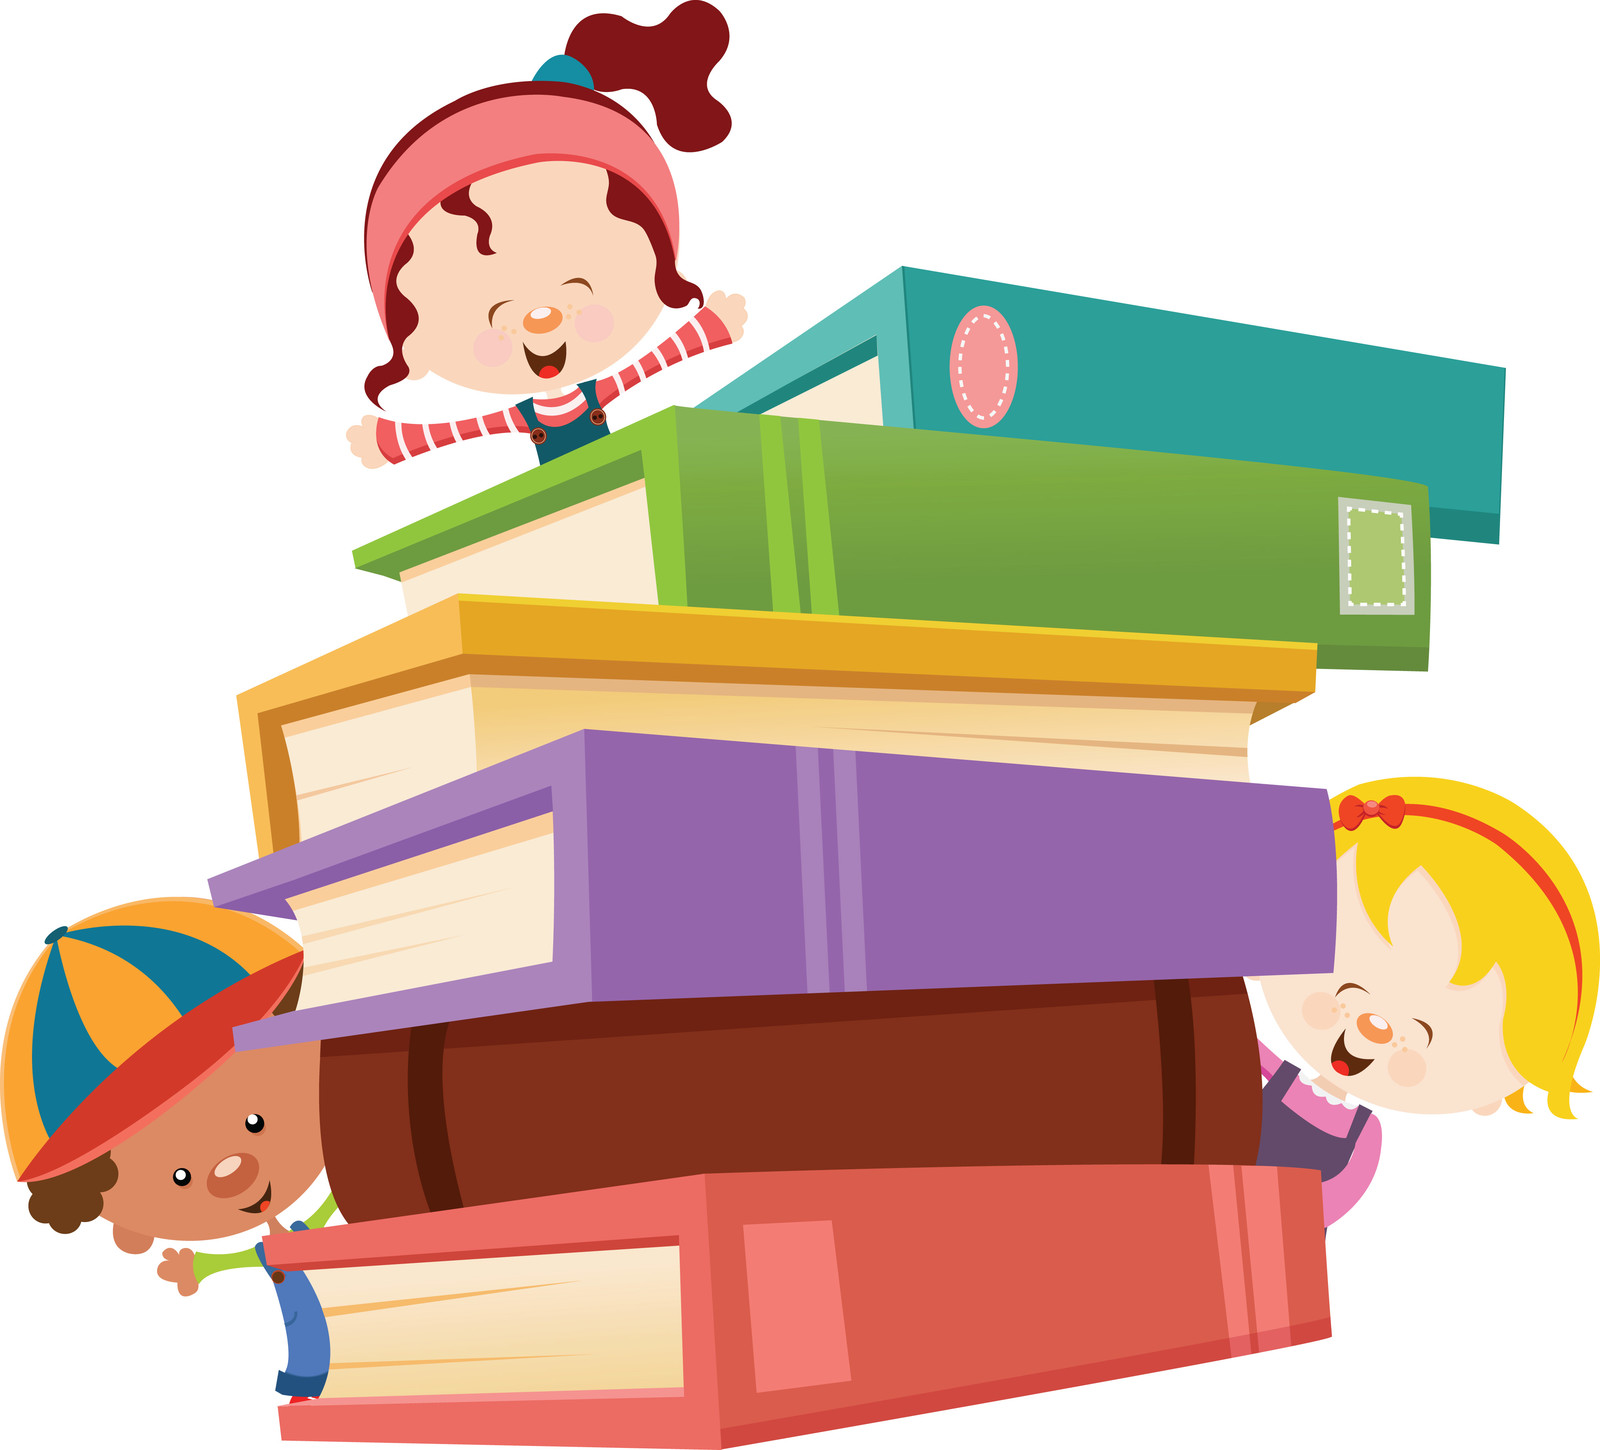 kids-with-stack-of-books.jpg